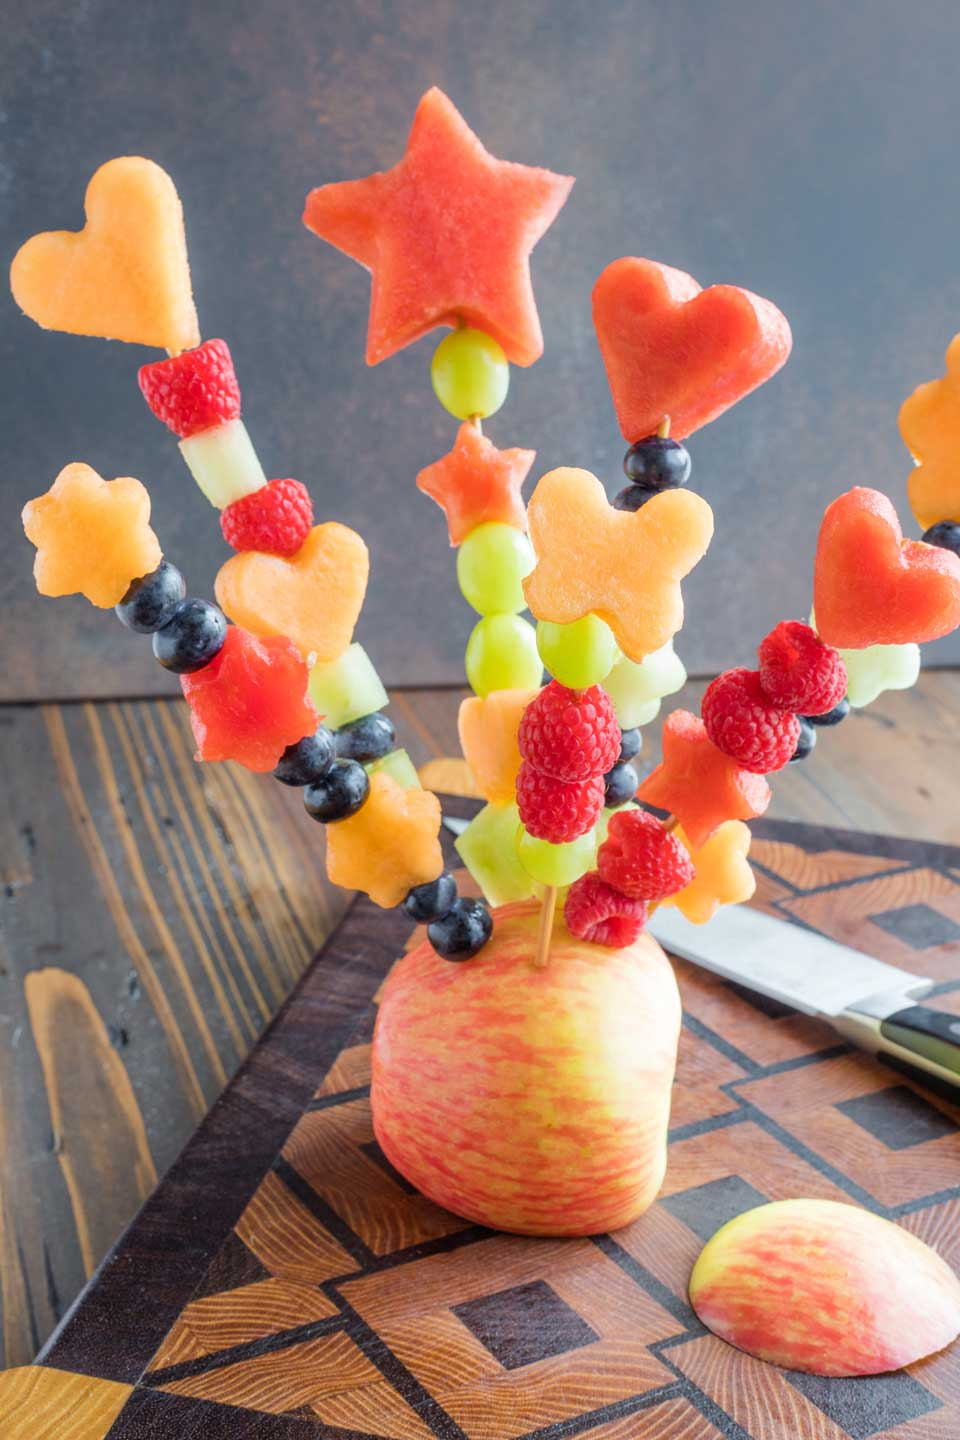 a finished bouquet of fruit flowers, with skewers stuck into an apple base, sitting on a cutting board